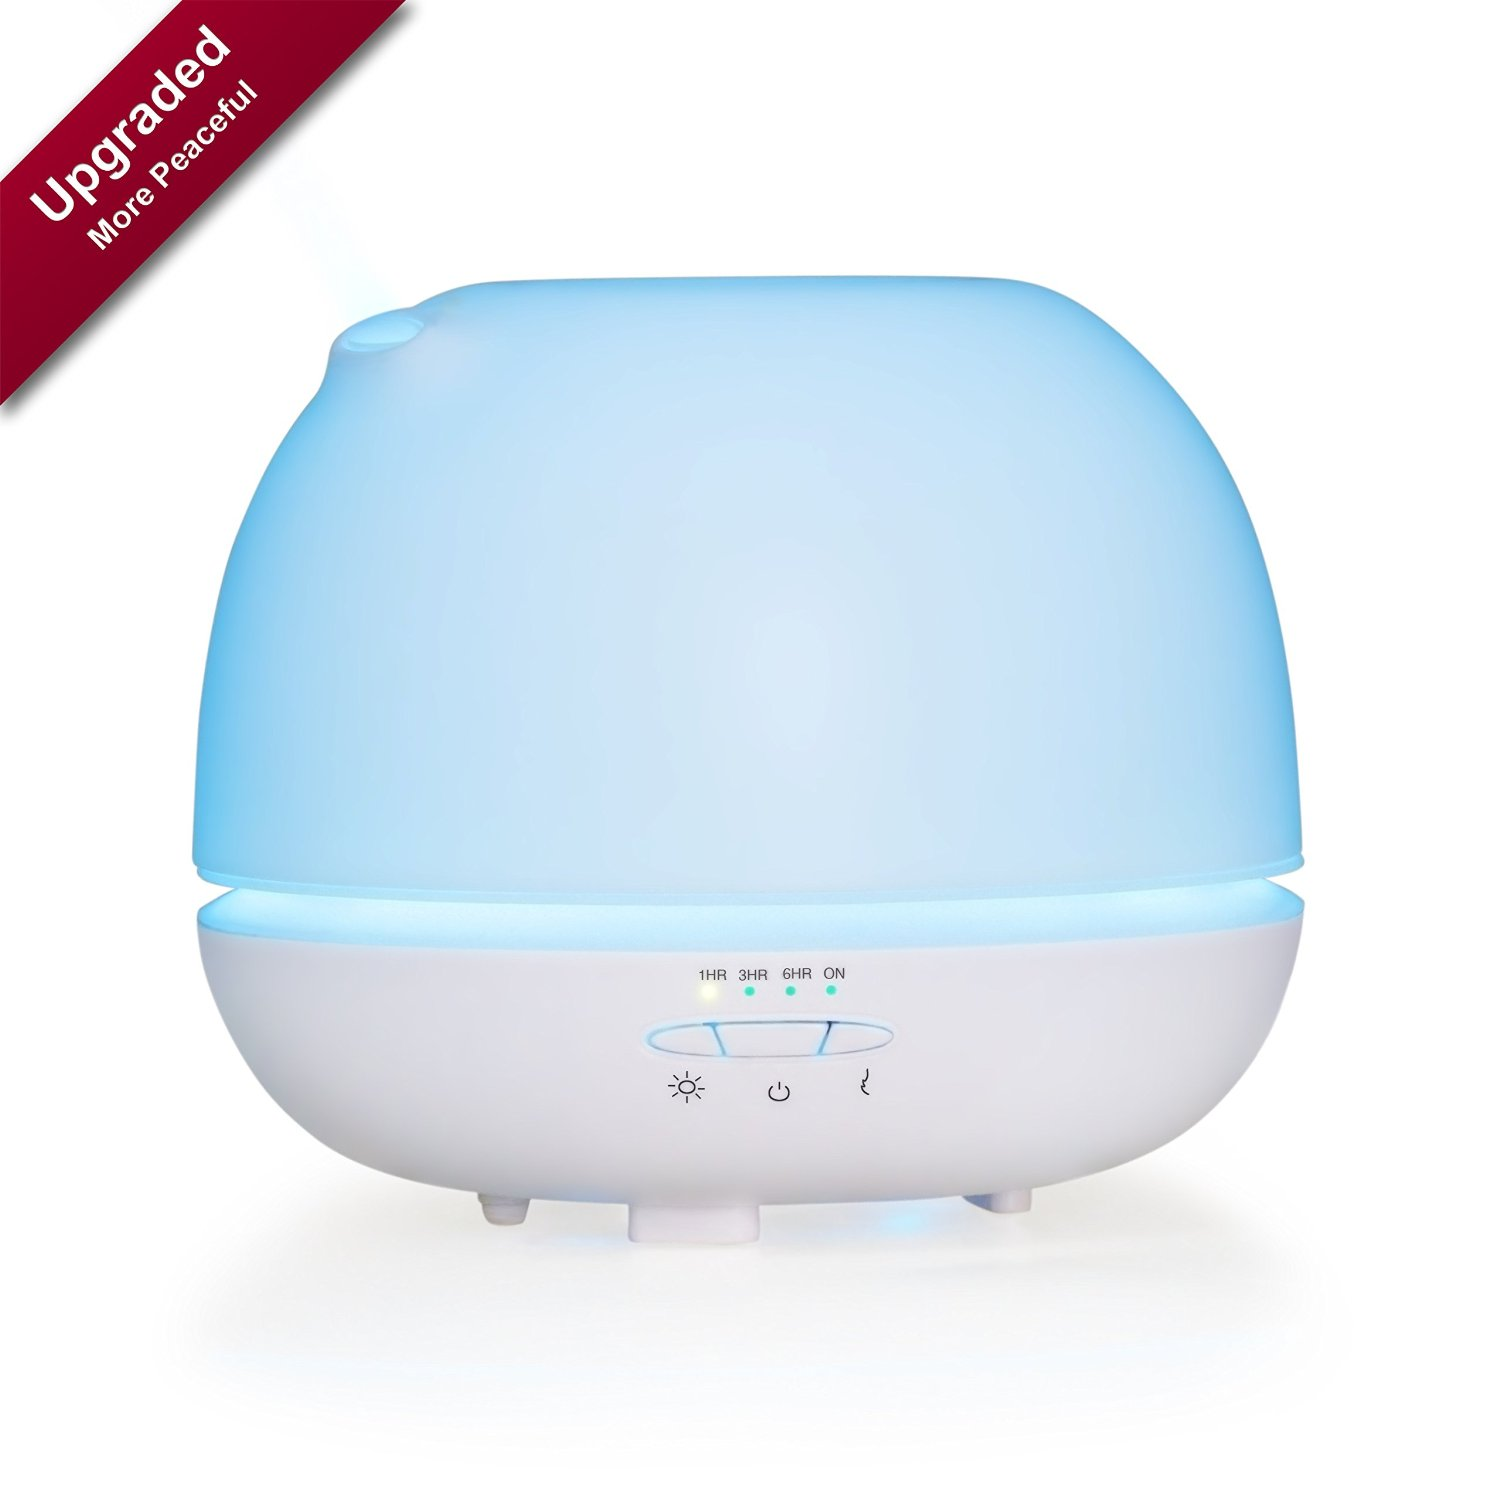 Cool Mist Air Humidifier By Vafee 500ml Essential Oil